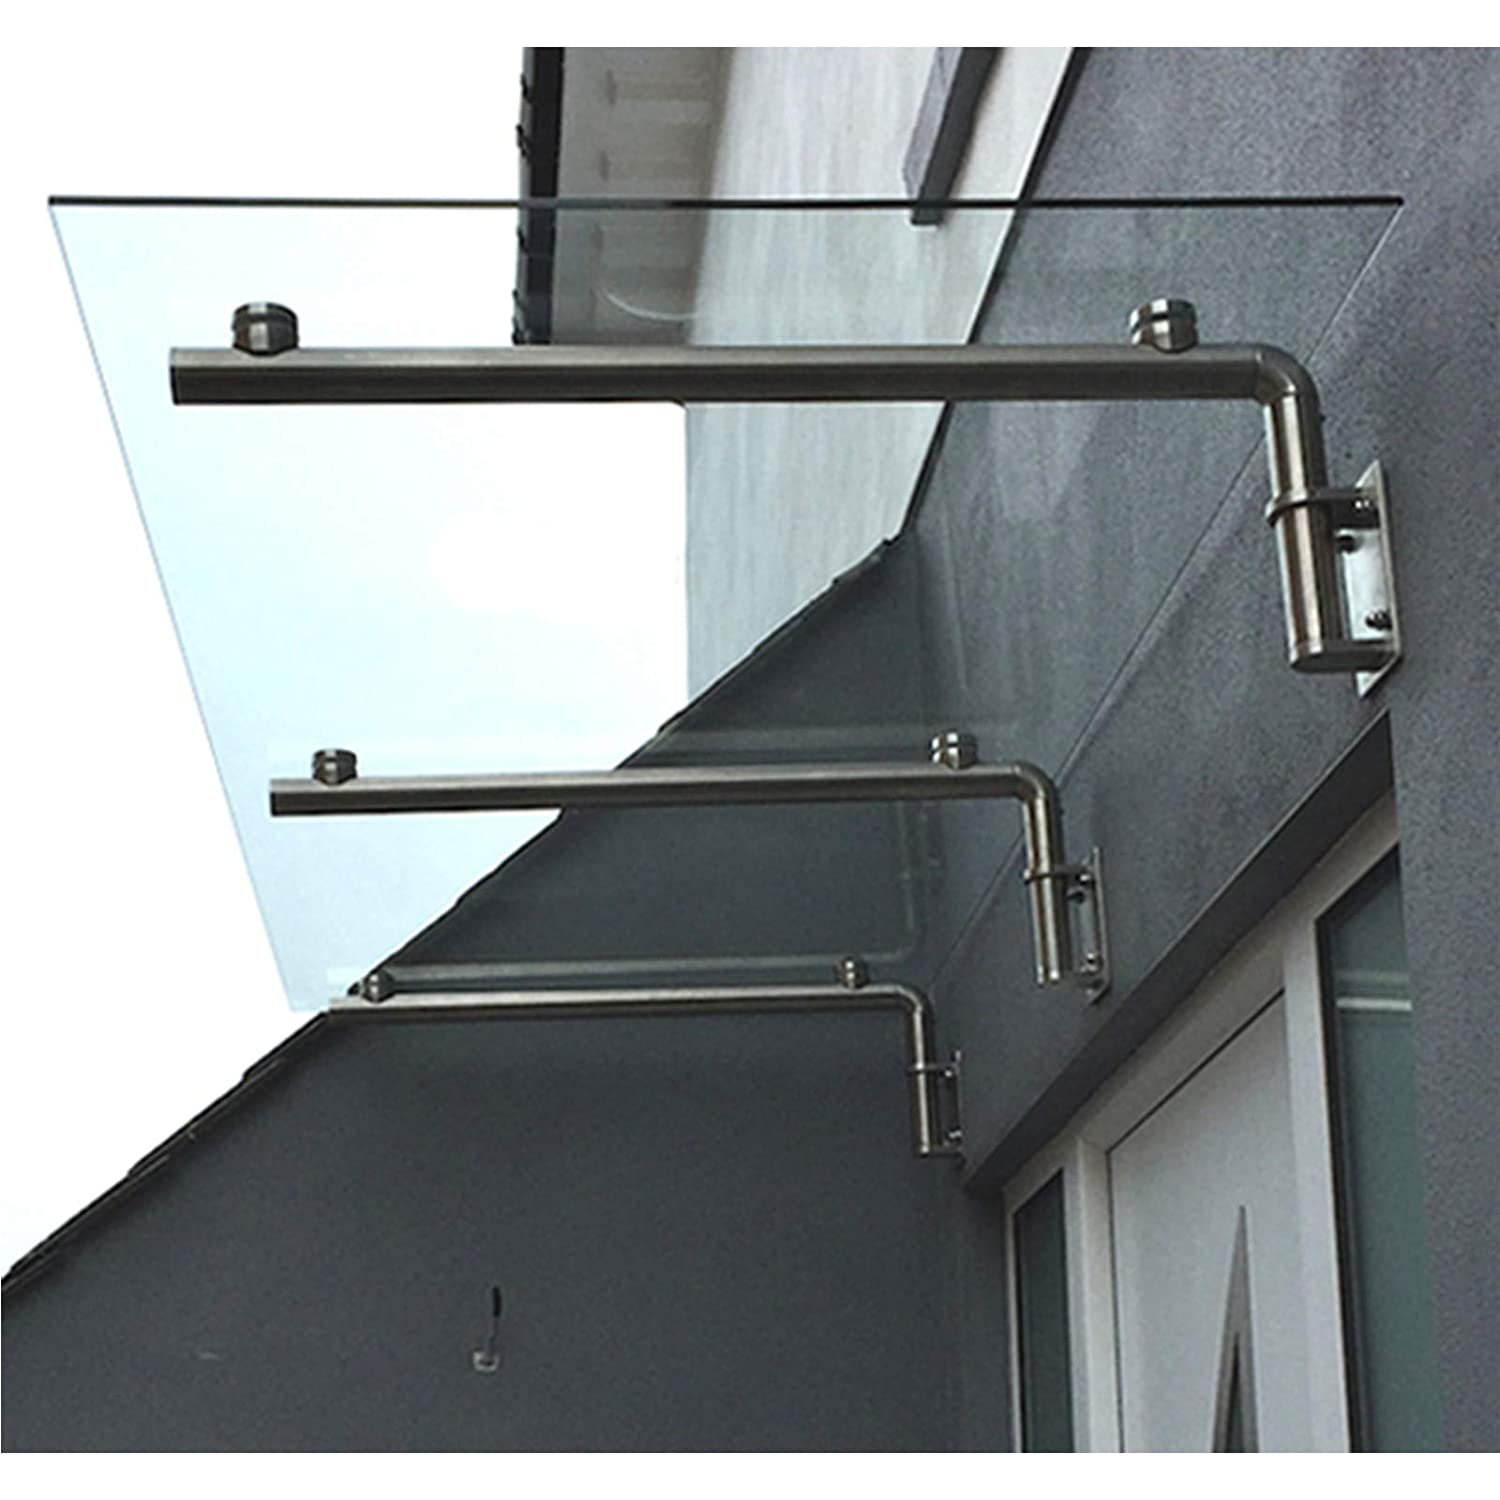 MonsterShop 1440 x 800mm Glass Canopy, 4 Stainless Steel Brackets,  Front/Back Door Porch Shelter